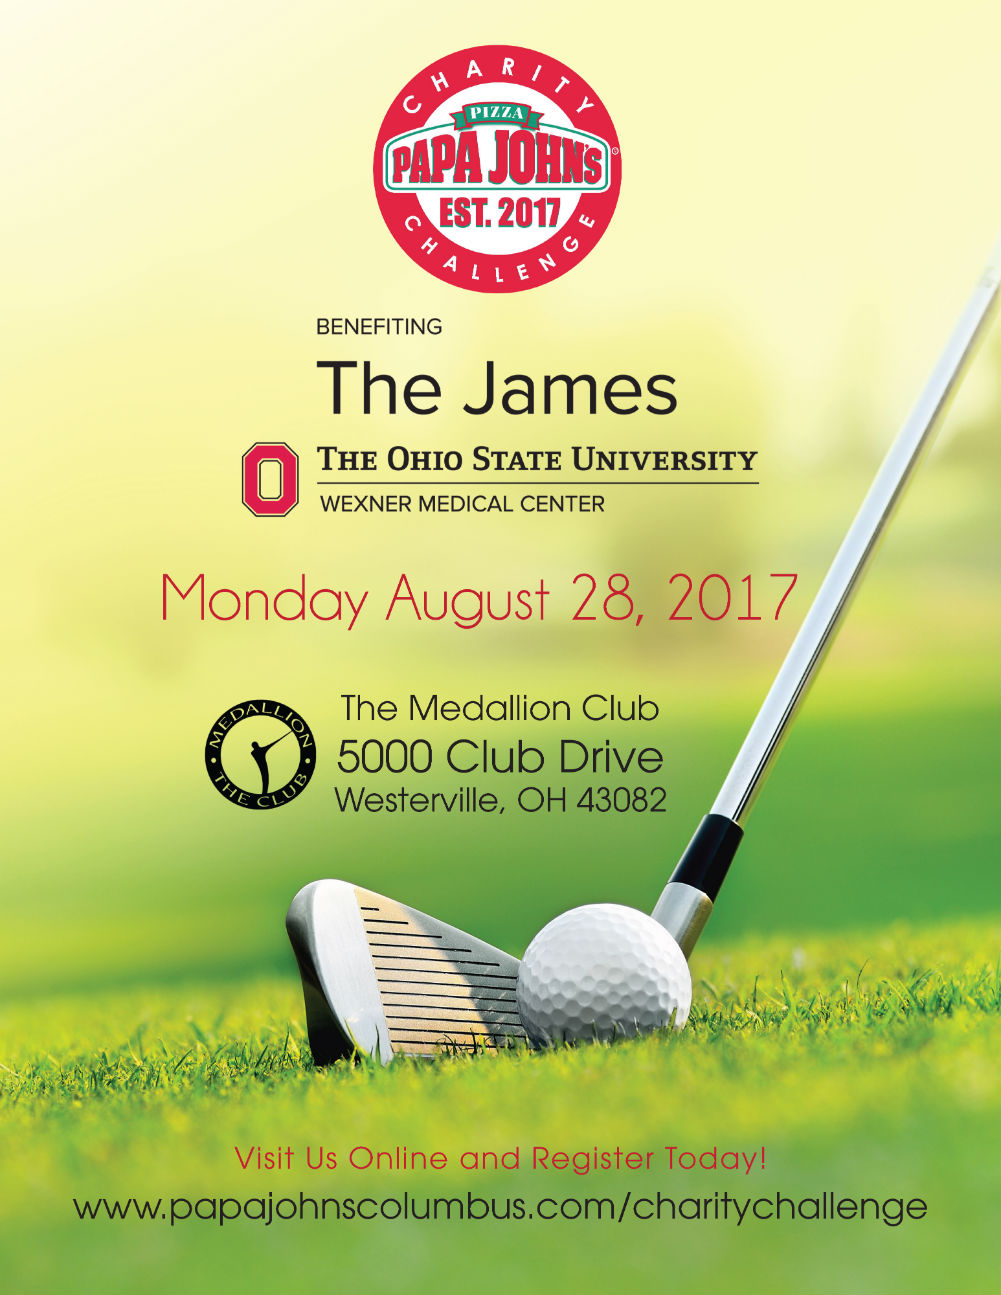 Papa John's Charity Challenge, benefiting The James at The Ohio State University Wexner Medical Center, Monday August 28 2017 at The Medallion Club.